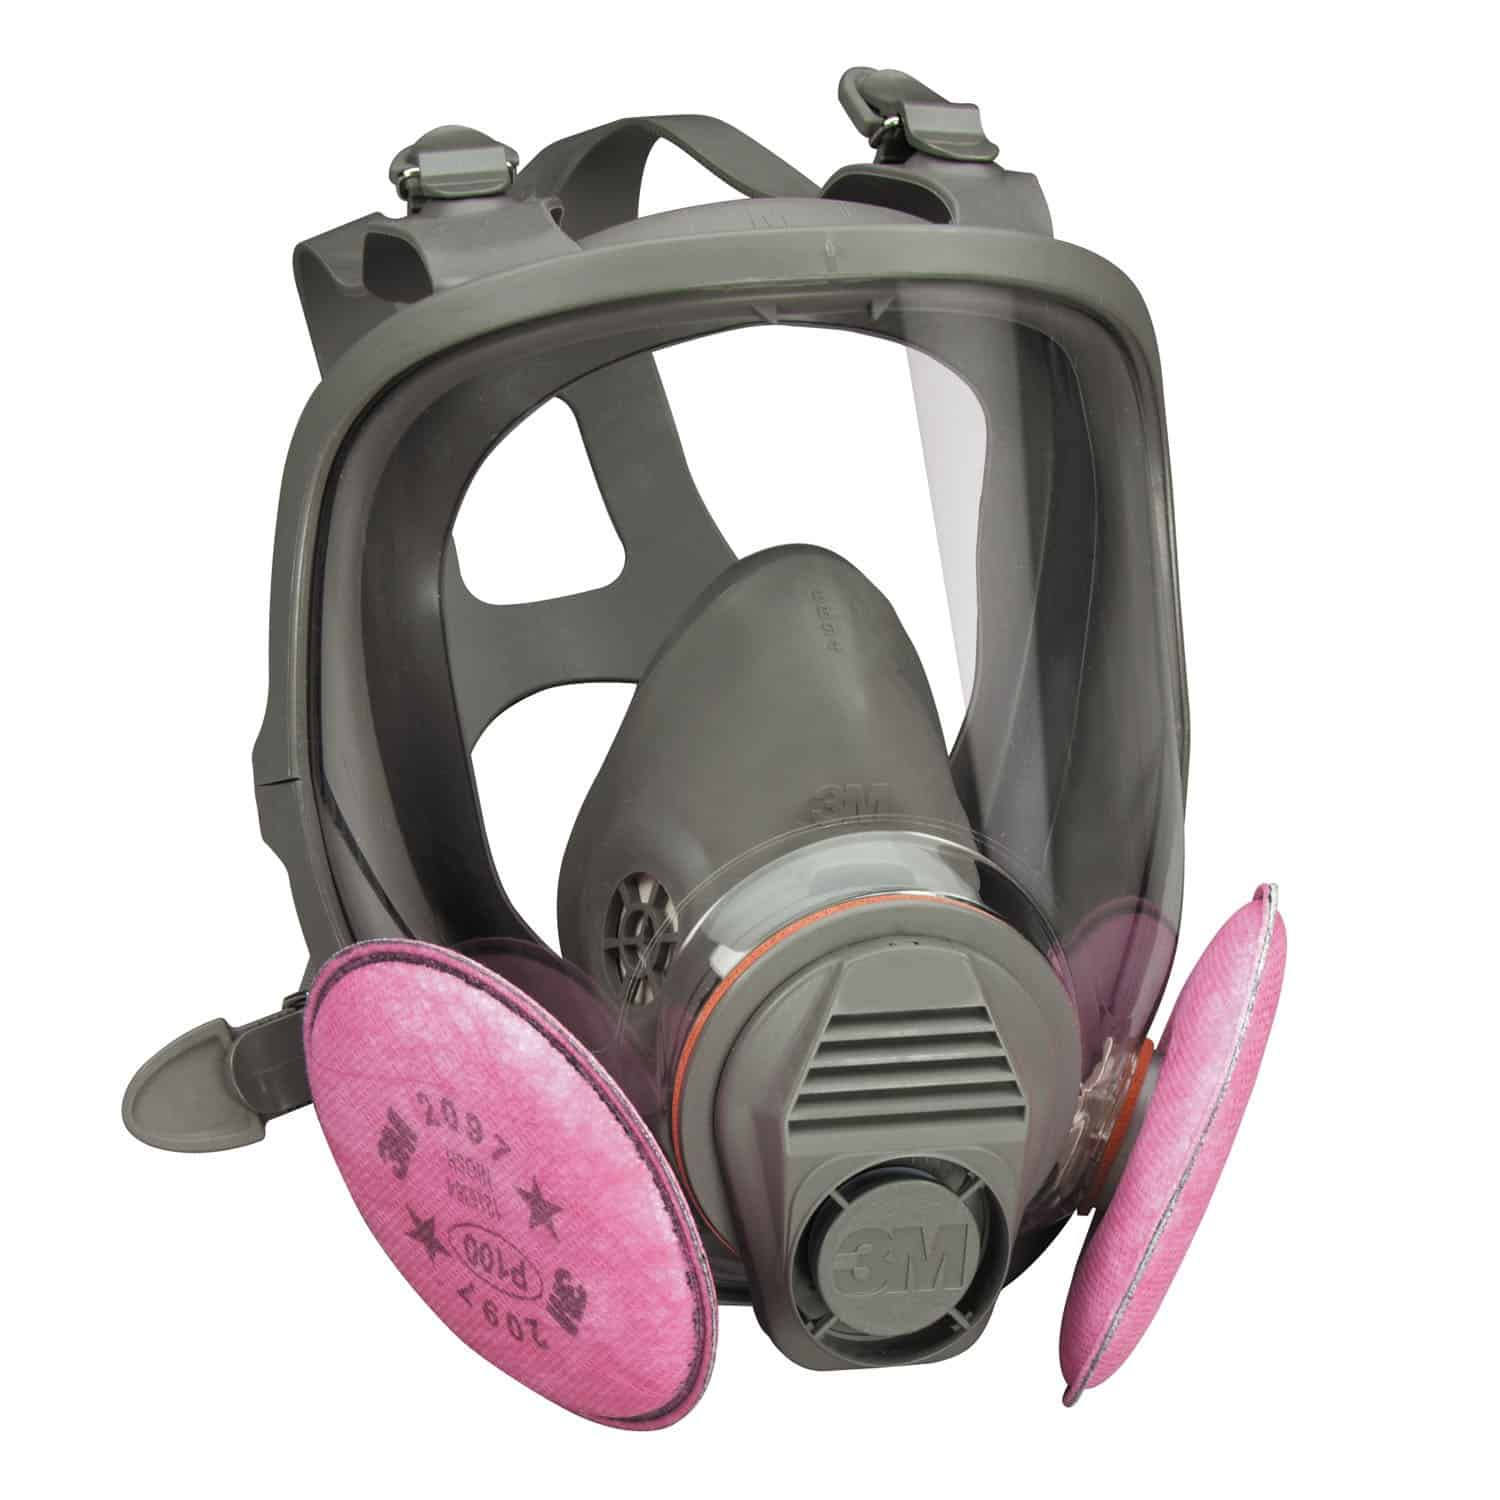 A full-face reusable particulate respirator